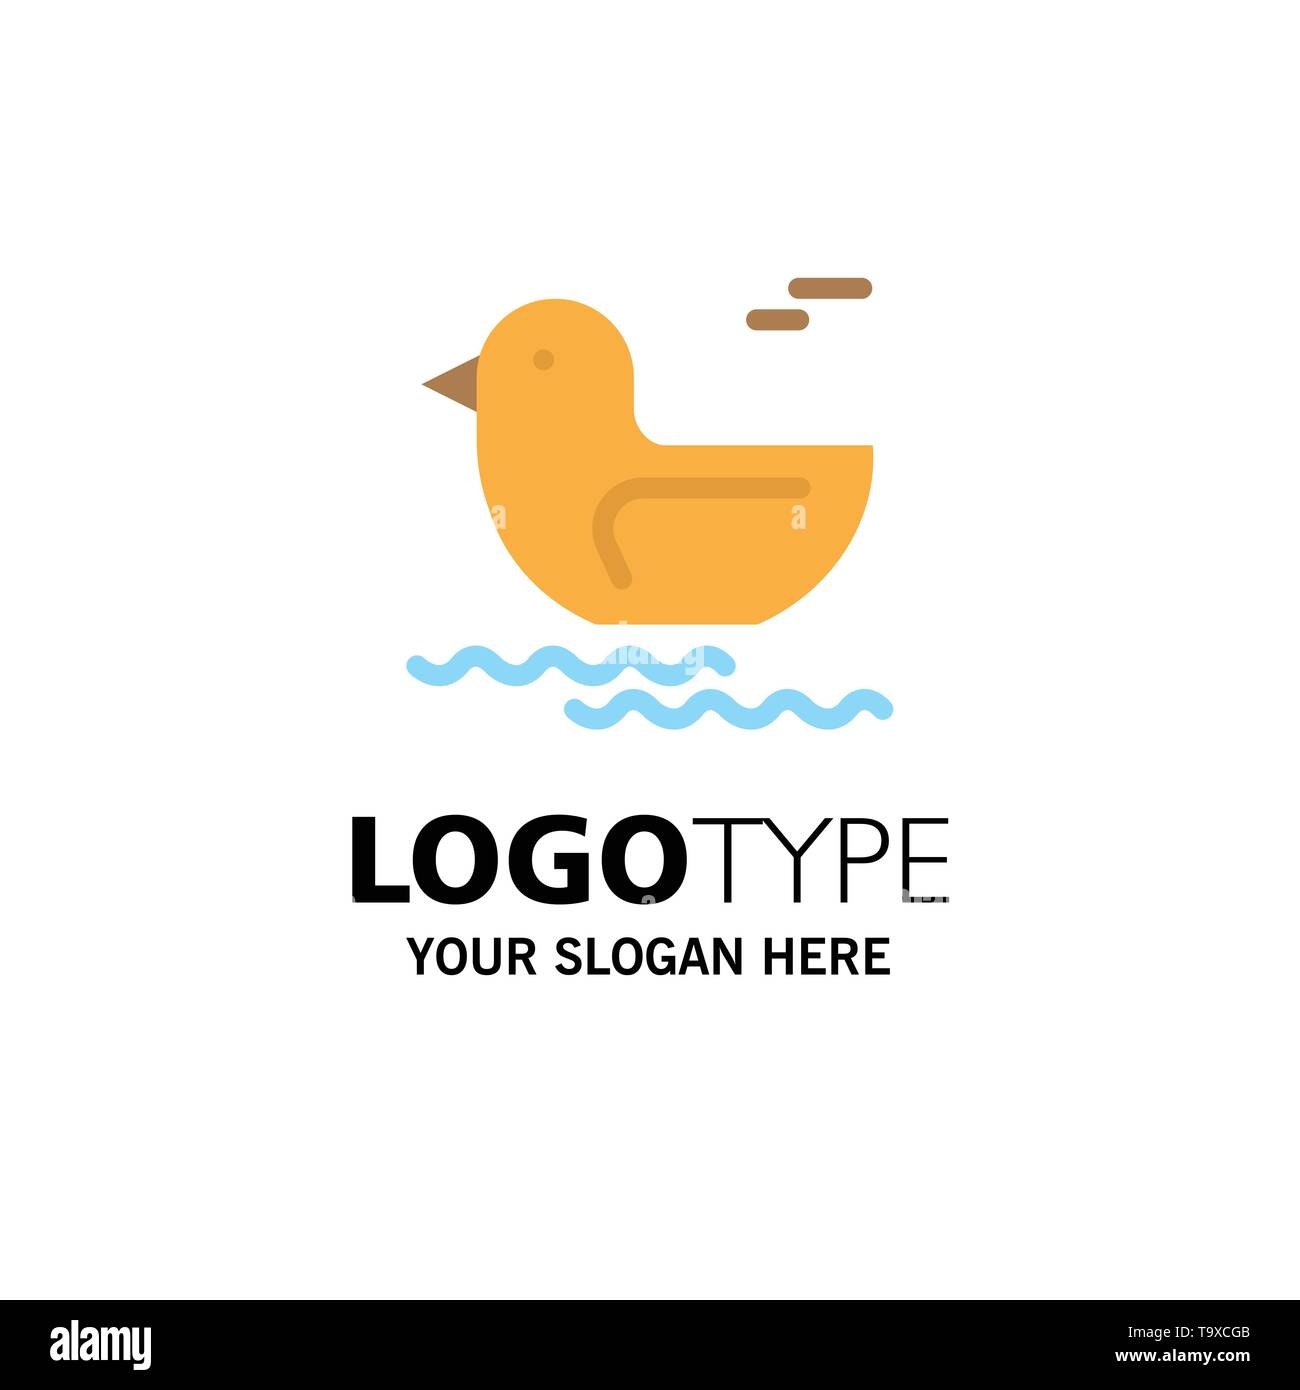 Duck, River, Canada Business Logo Template. Flat Color - Stock Image